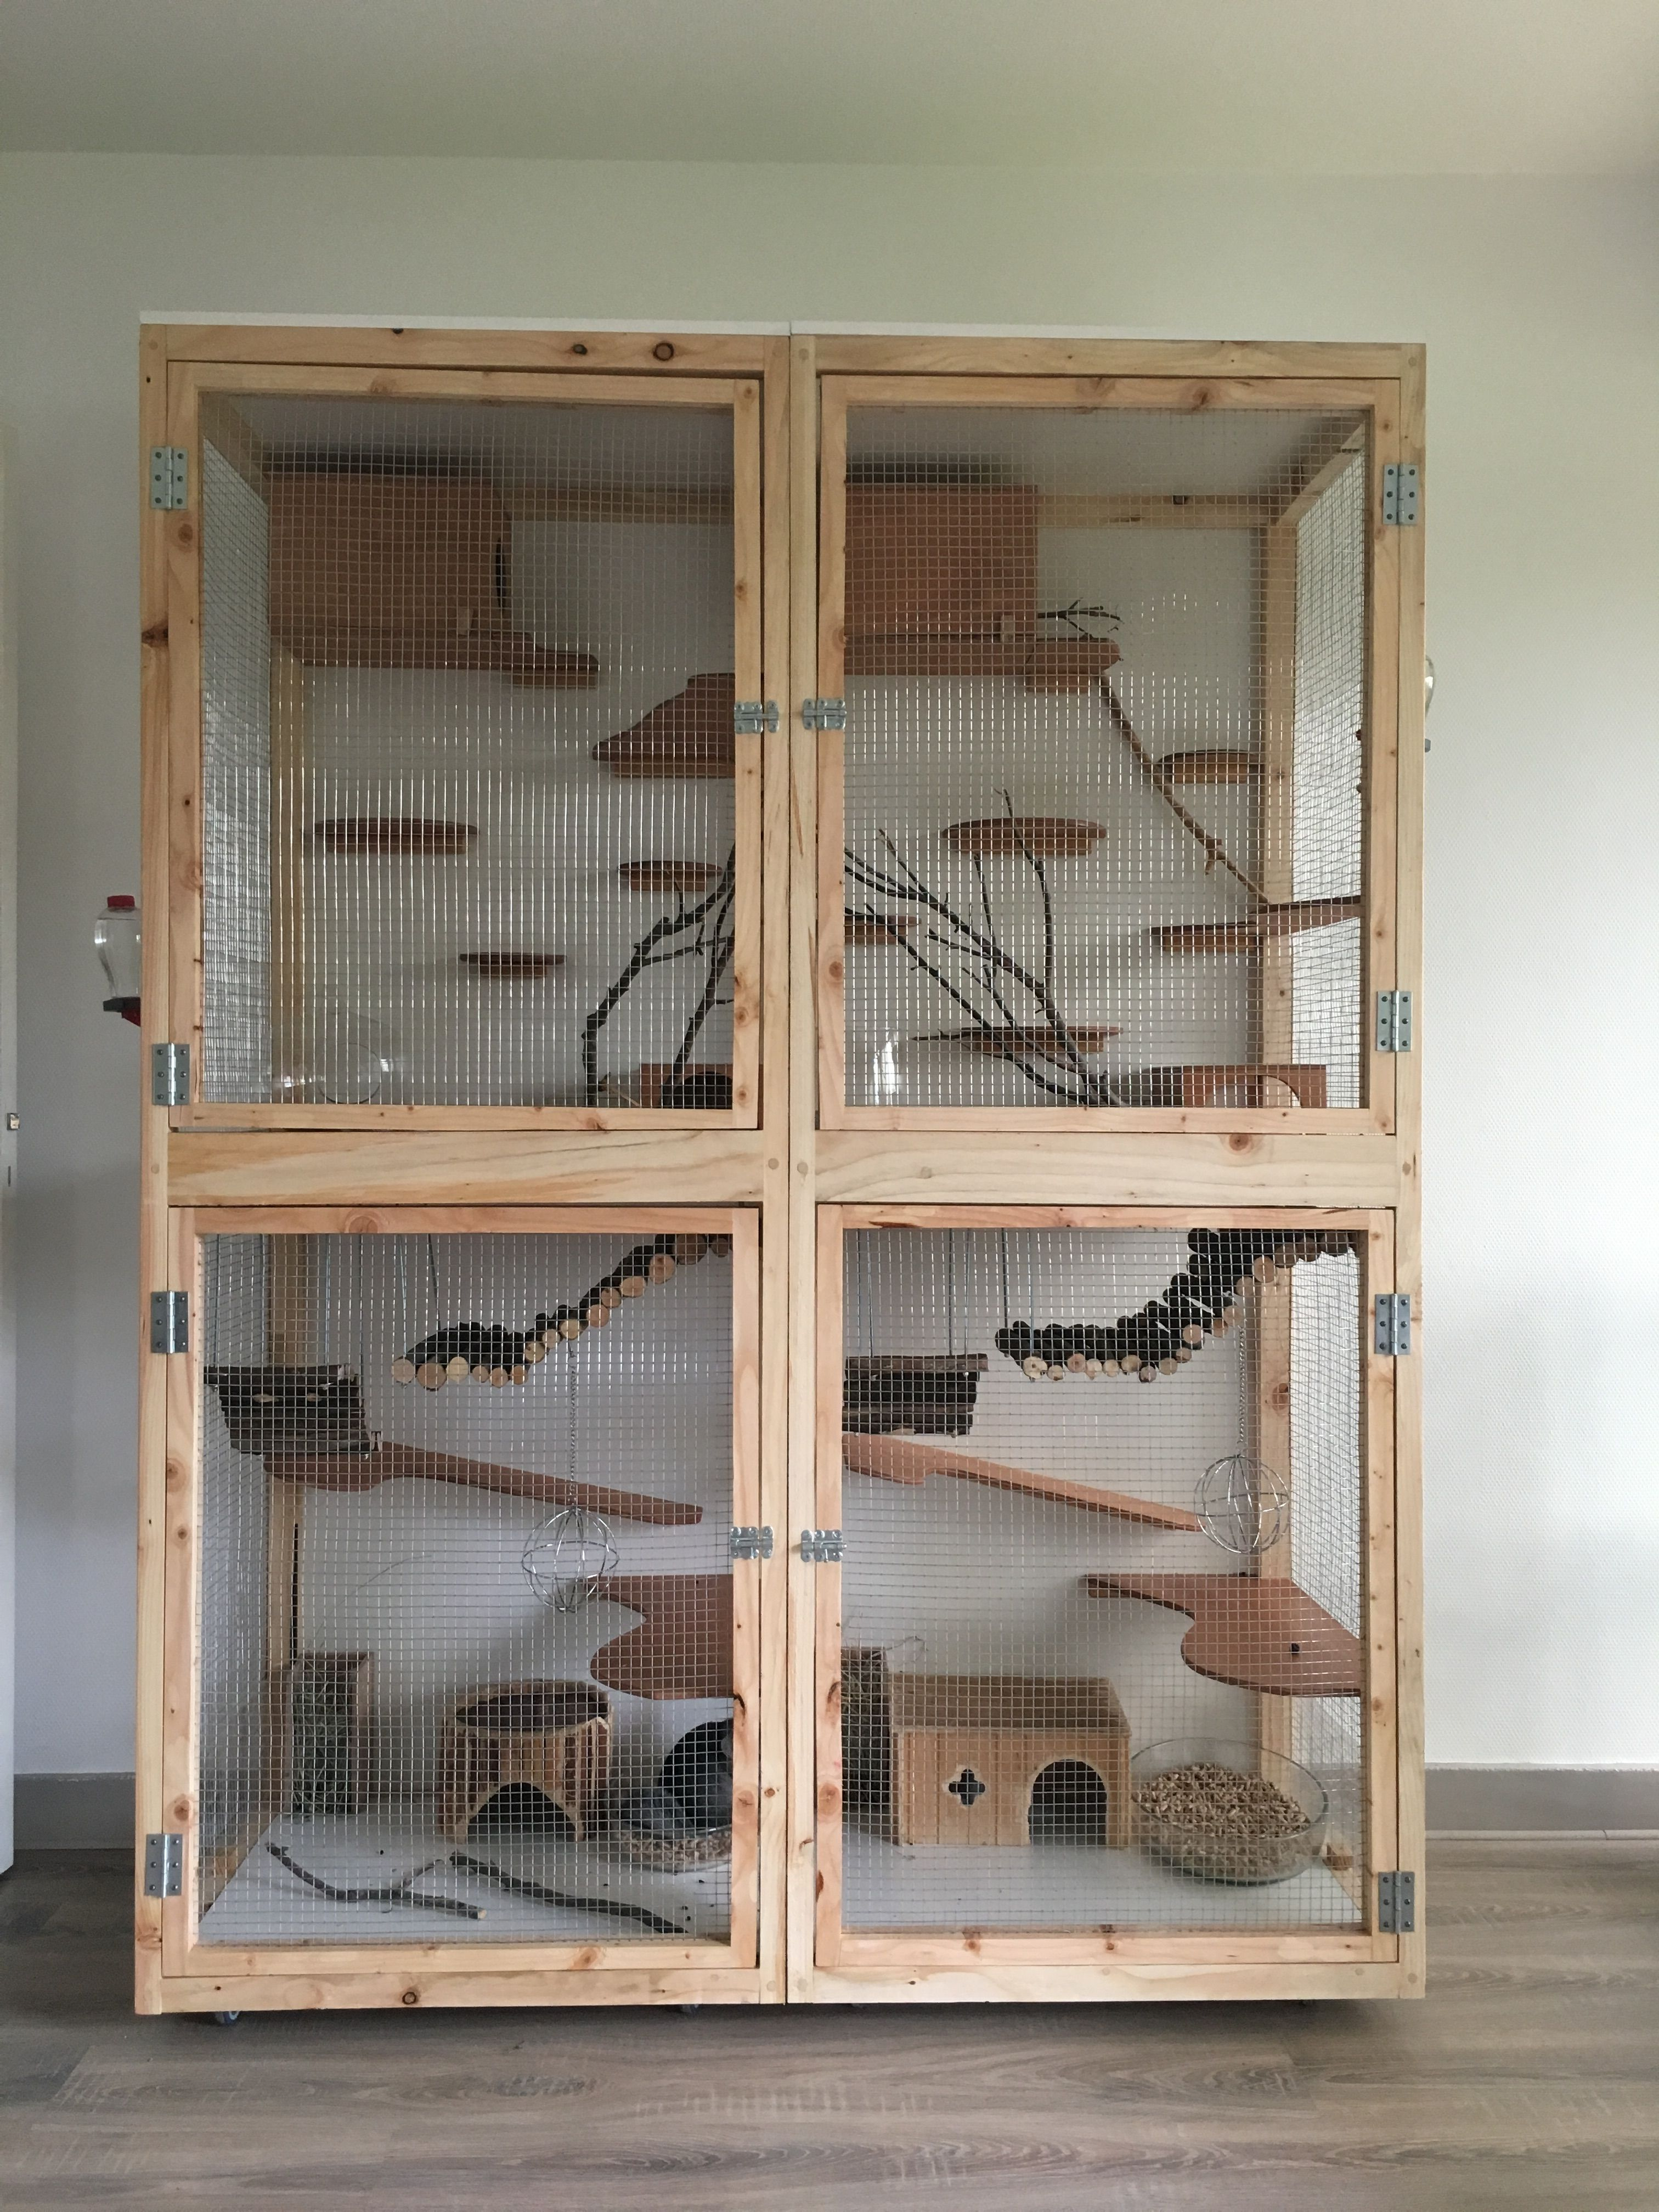 Prix Maison Igc Forum Homemade Cage Pour Chinchillas Aminals Ferret Cage